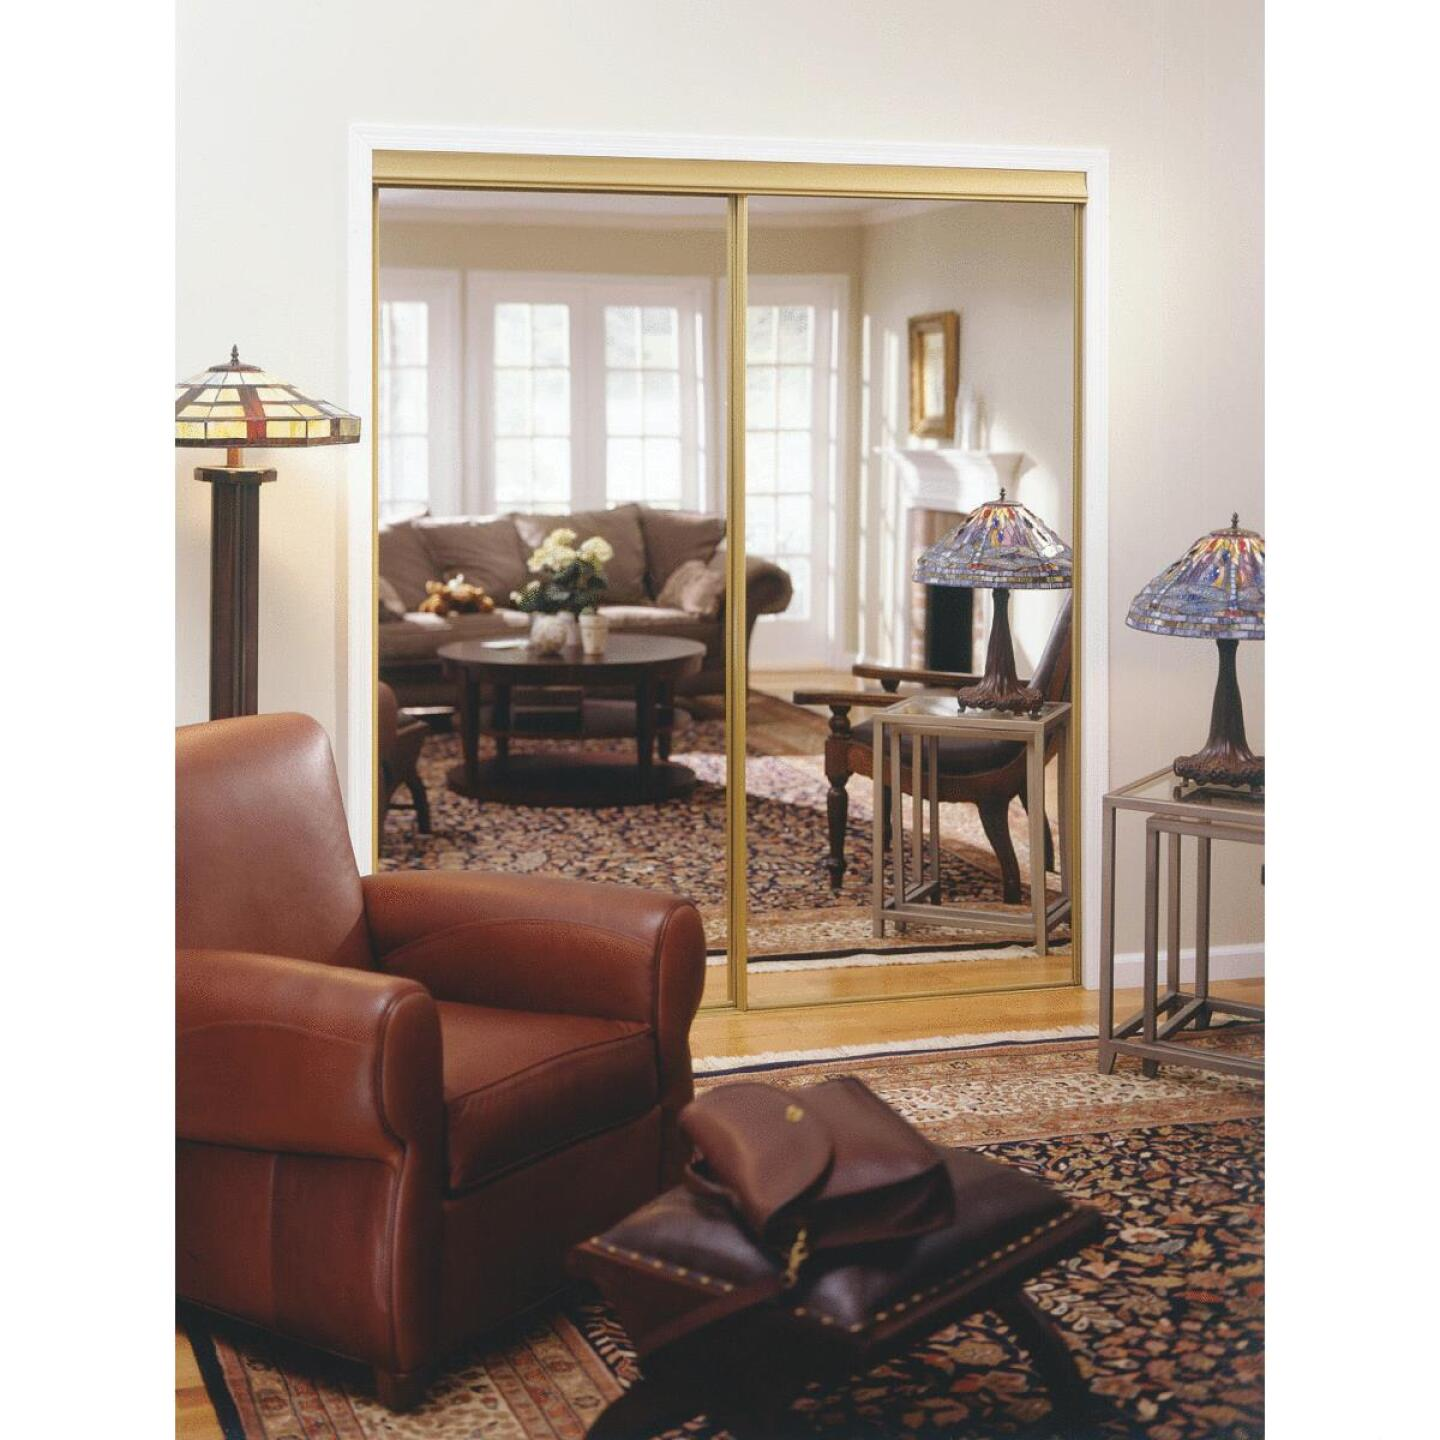 Erias 4050 Series 71 In. W. x 80-1/2 In. H. Mayan Gold Top Hung Mirrored Bypass Door Image 1